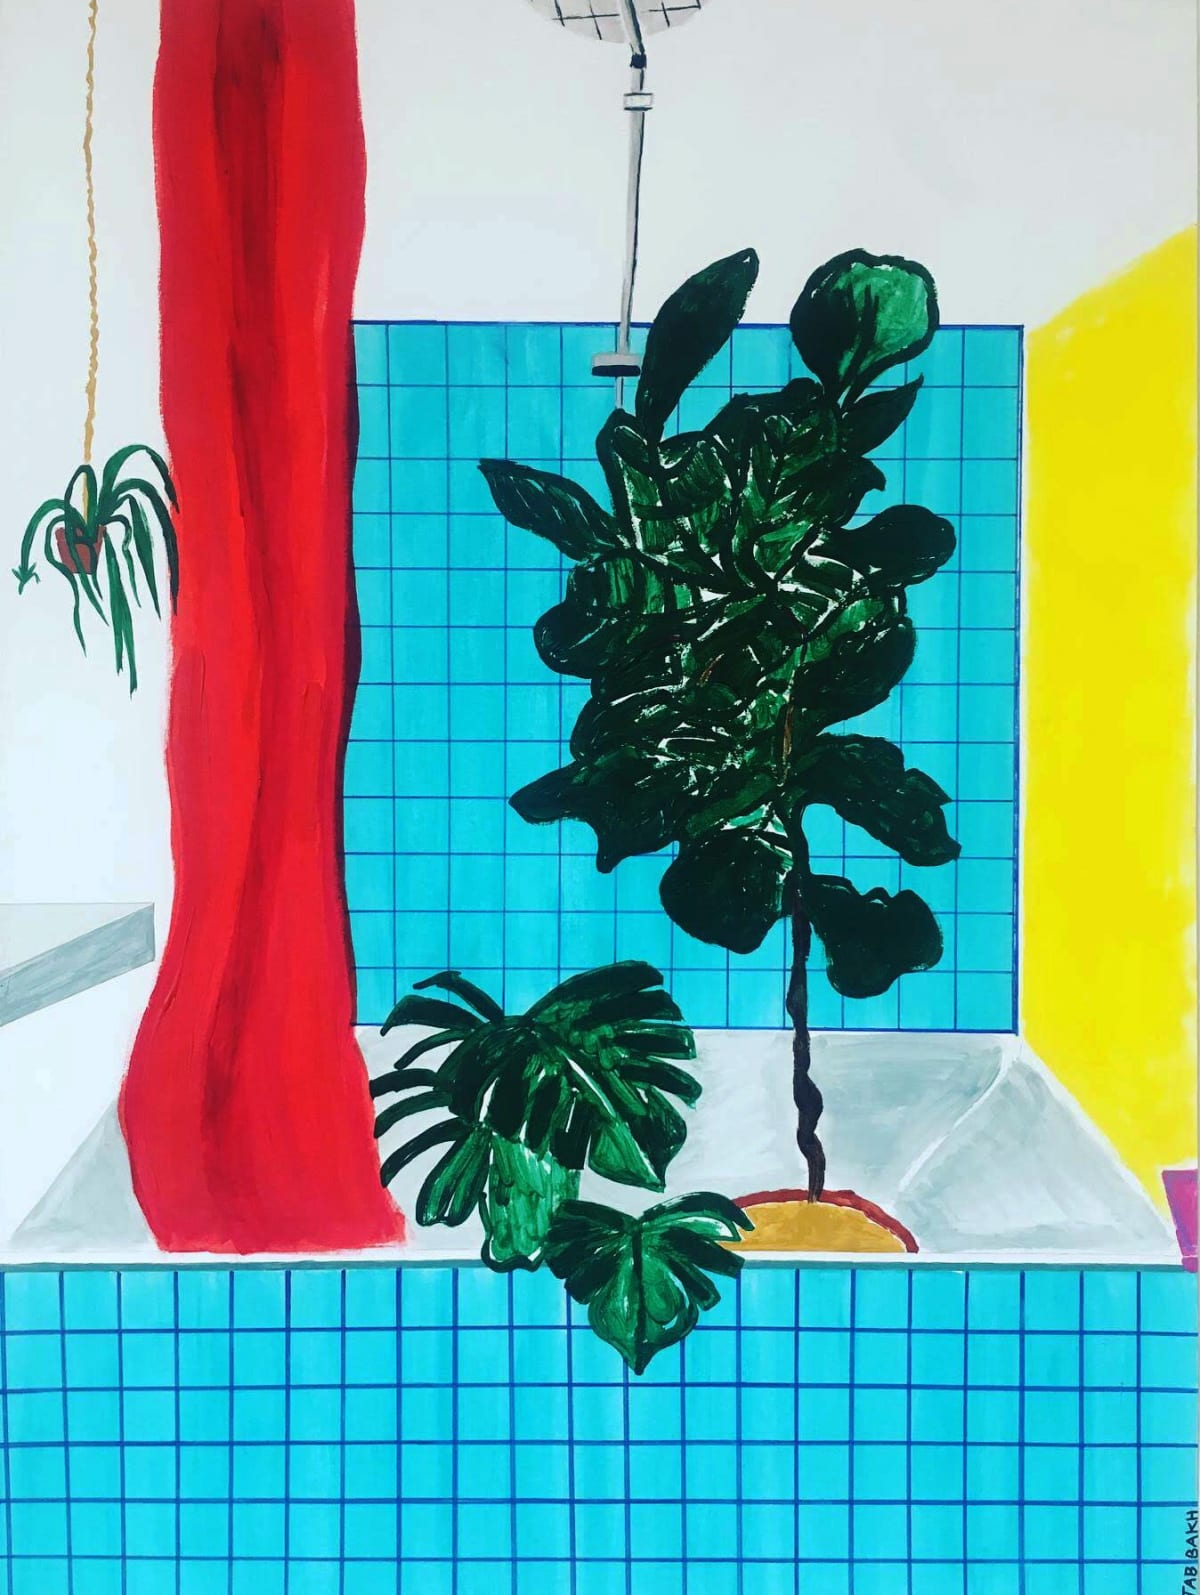 Cathy Tabbakh Modern Gardening , 2019 Ink, Acrylic and Felt Tip on Paper 42 x 57 cm 16 1/2 x 22 1/2 in